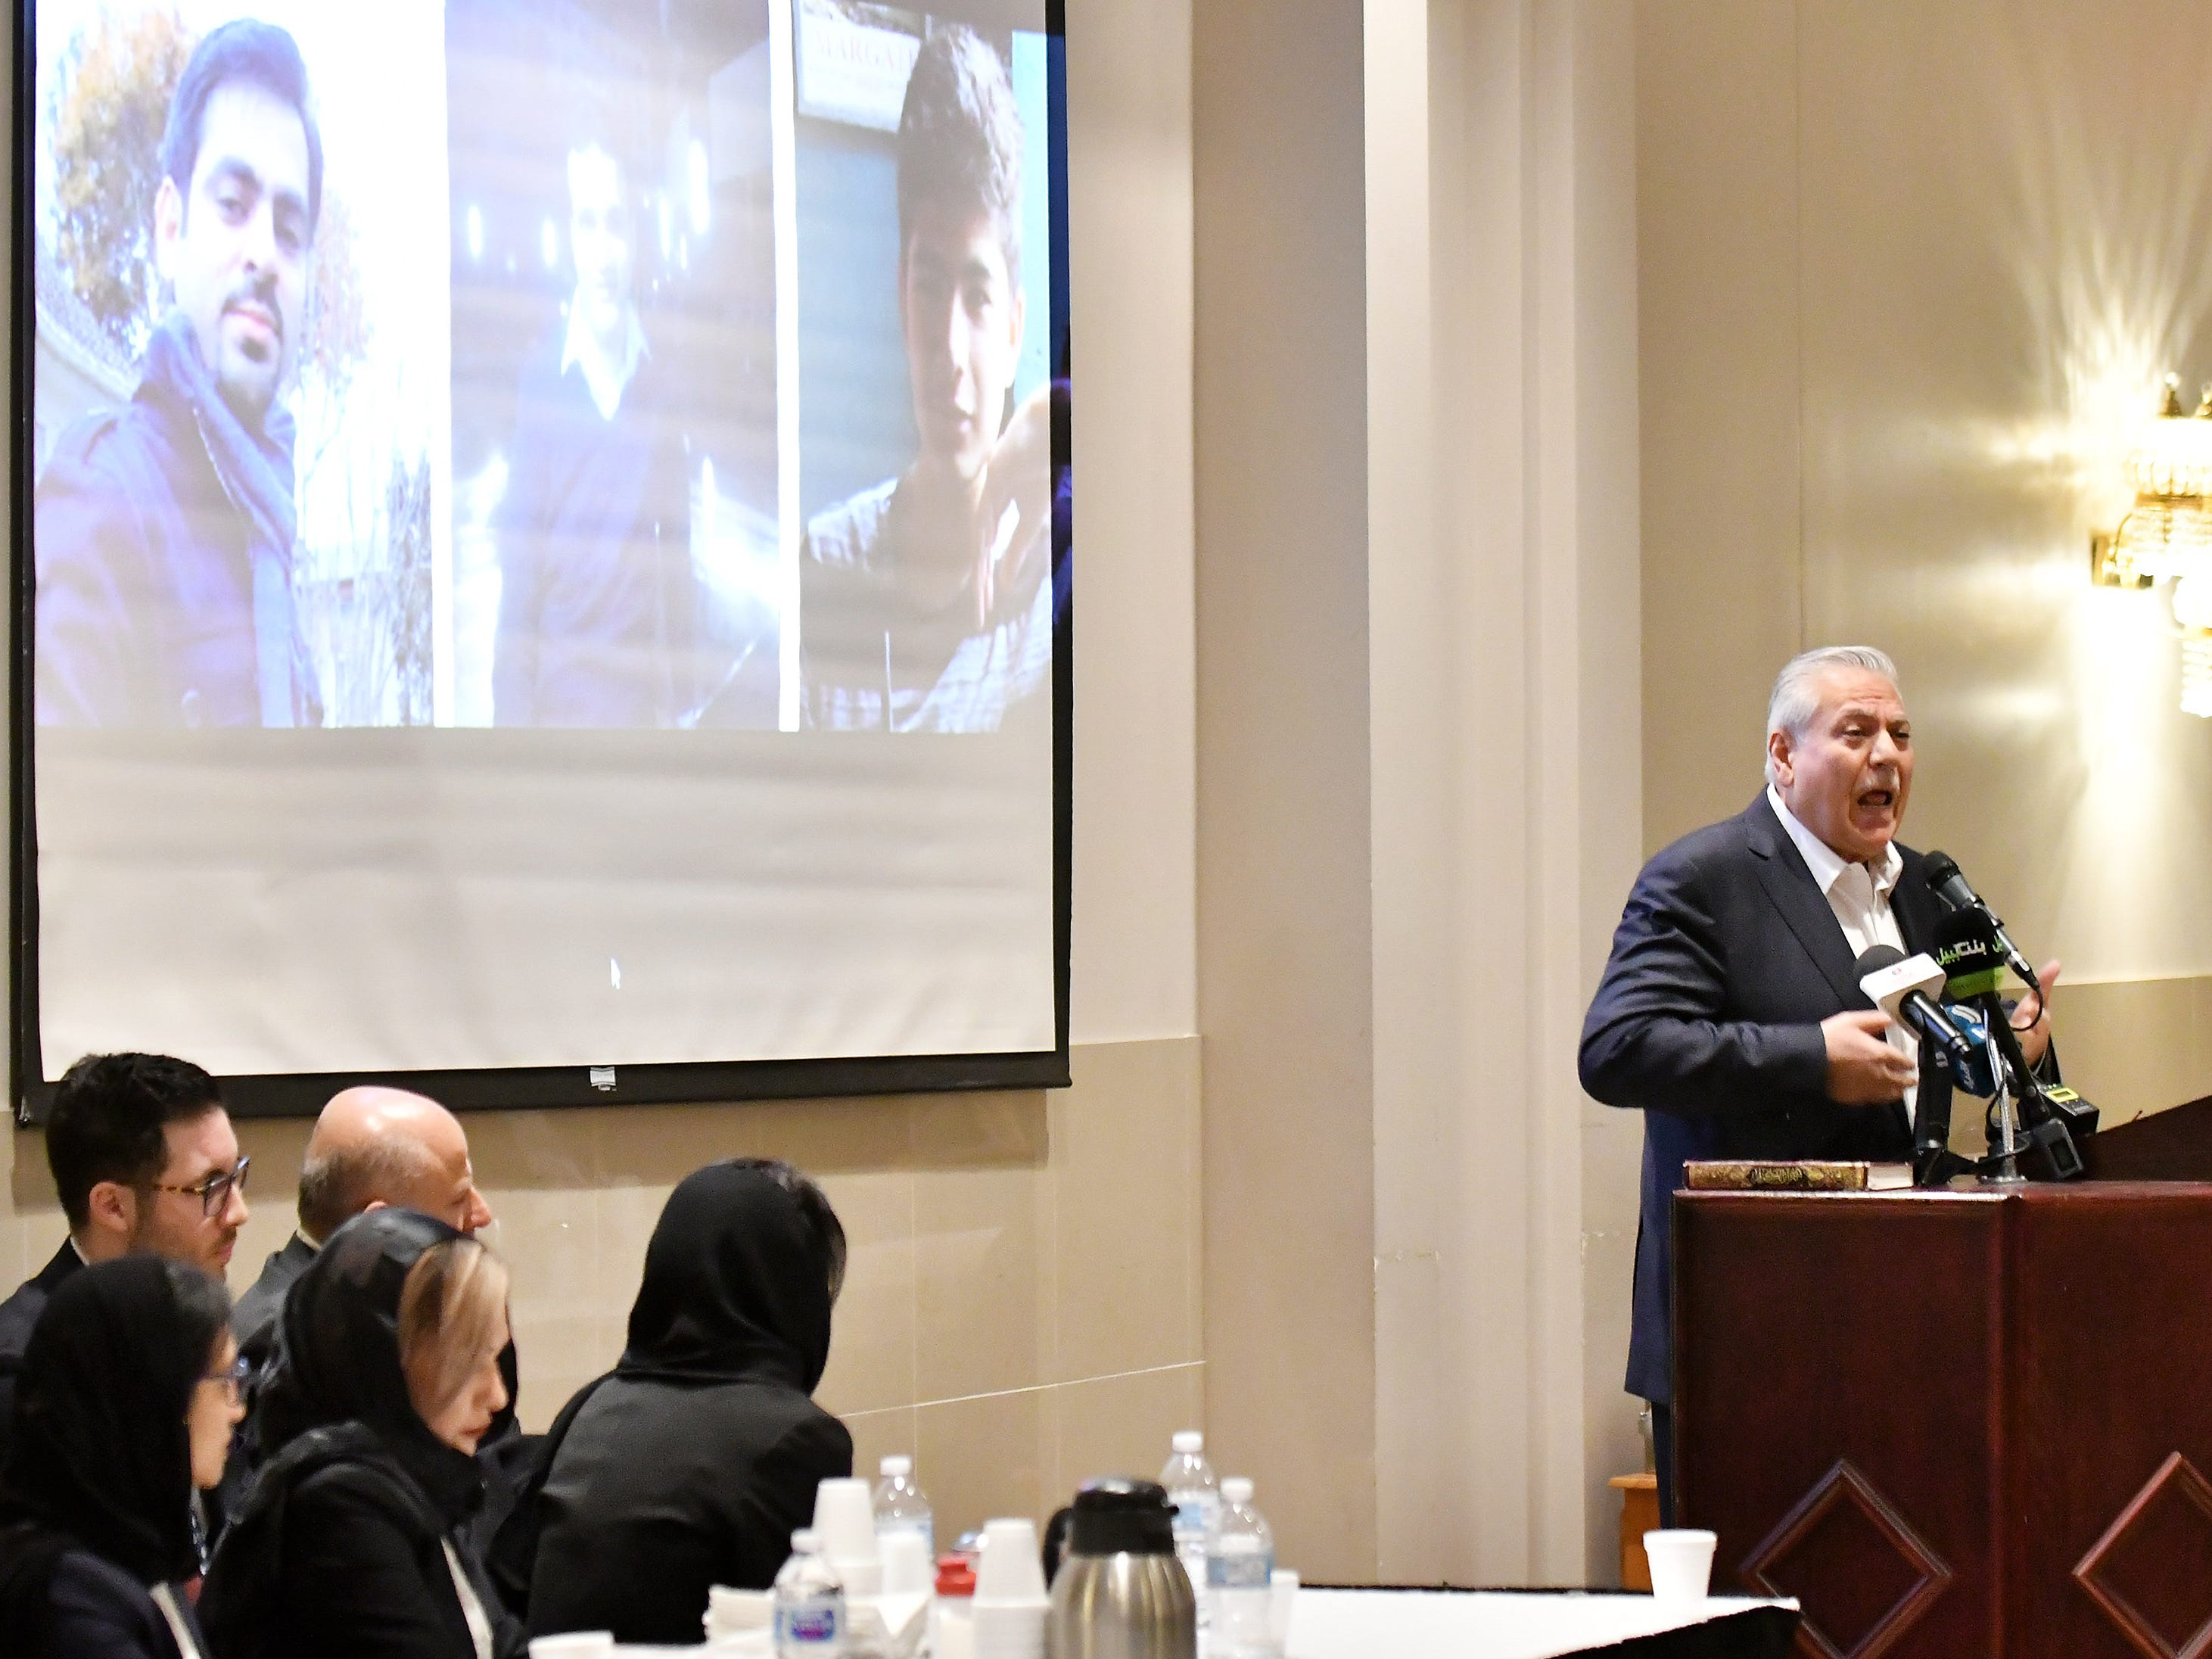 Osama Siblani, publisher of The Arab American News, speaks at the memorial.  On the screen are photos of the victims from the New Zealand mosque shooting.